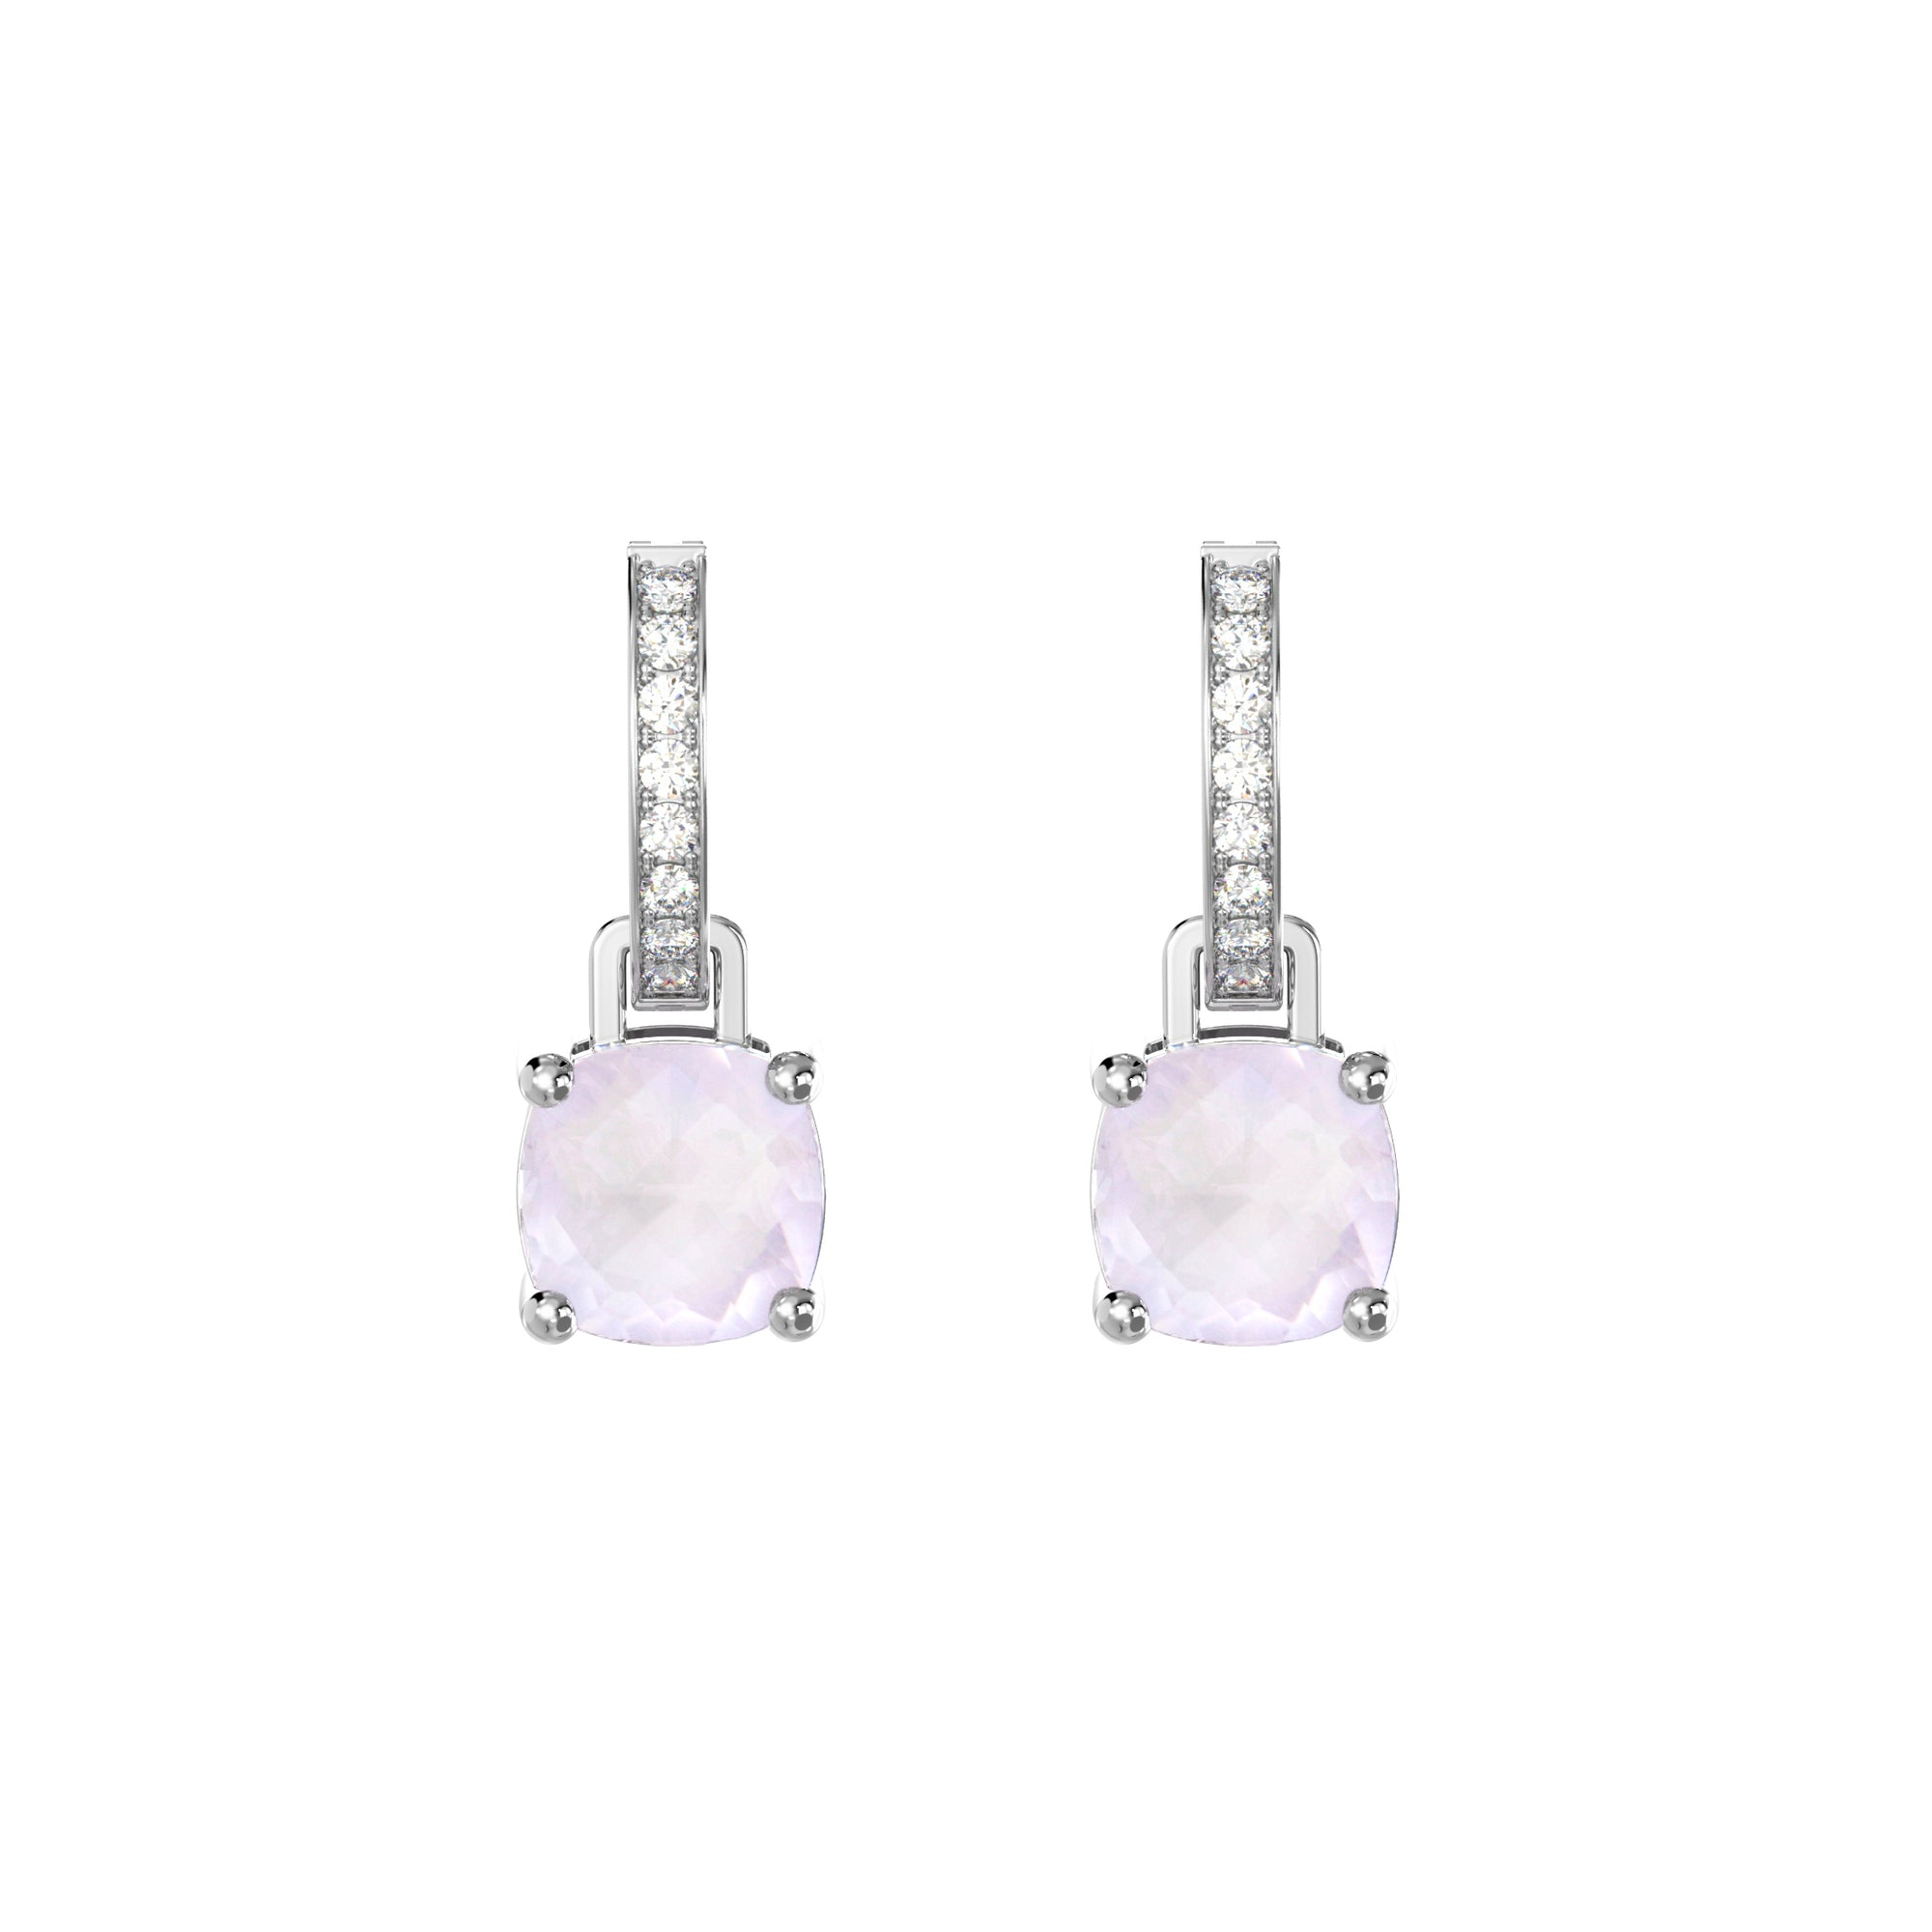 925 Silver Luxe Series Earrings Charms - Wylie (Rose Quartz)